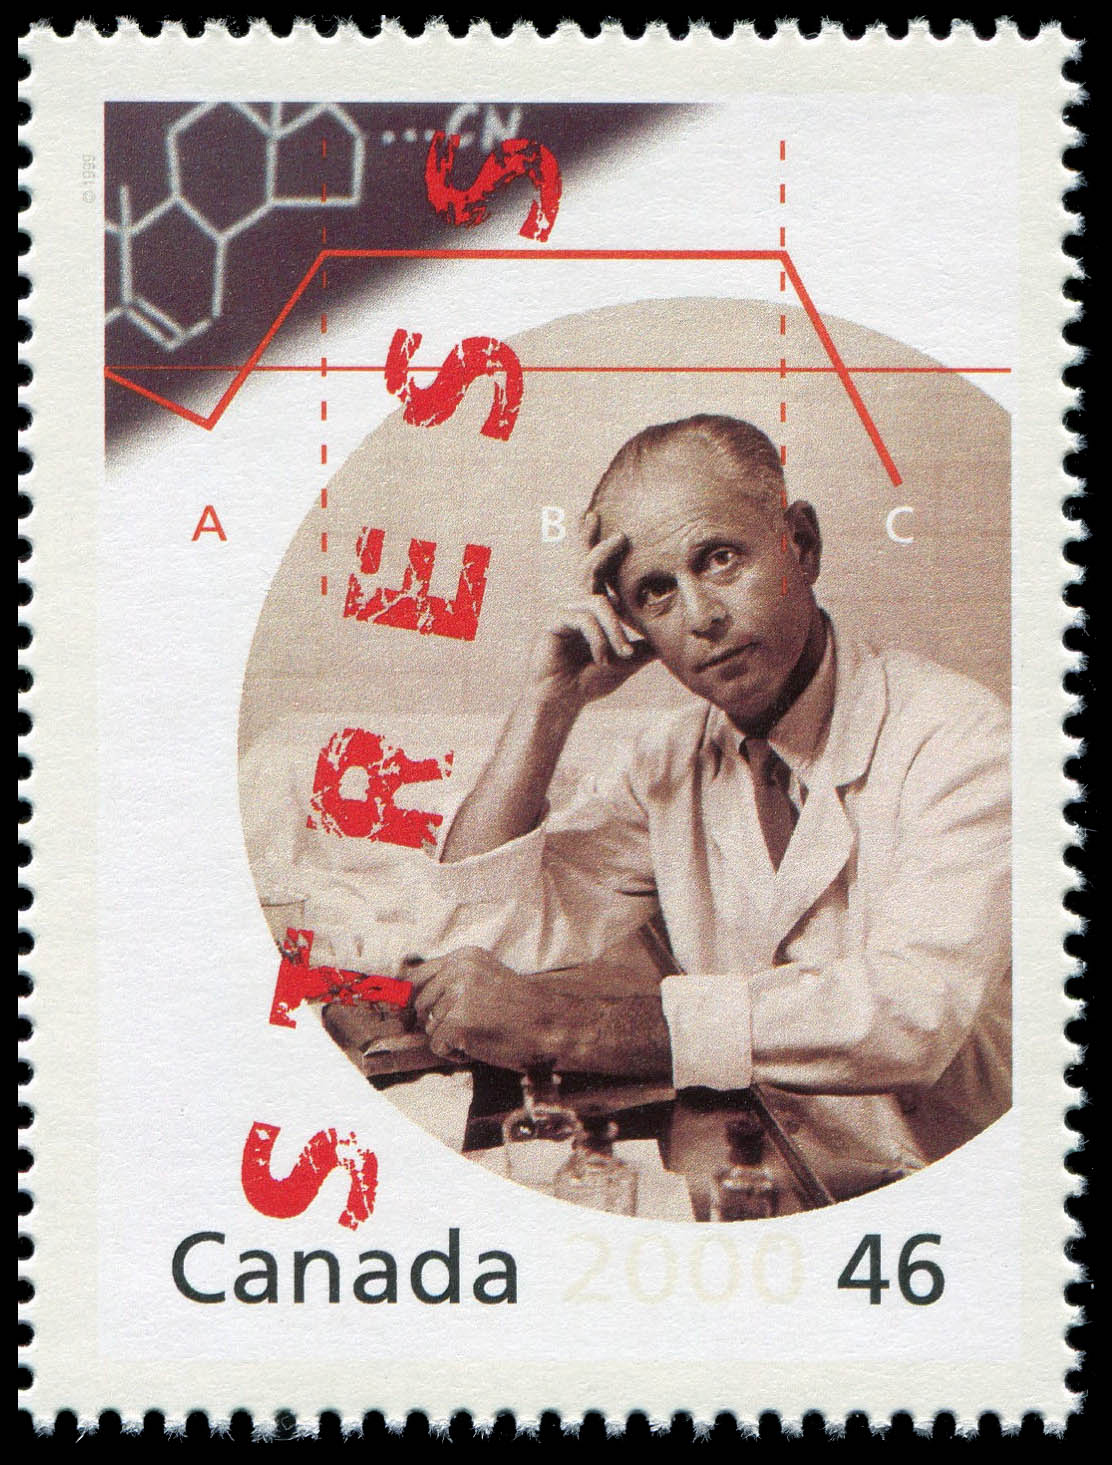 Dr. Hans Selye: Documenting the Stress of Life Canada Postage Stamp | The Millennium Collection, Medical Innovators